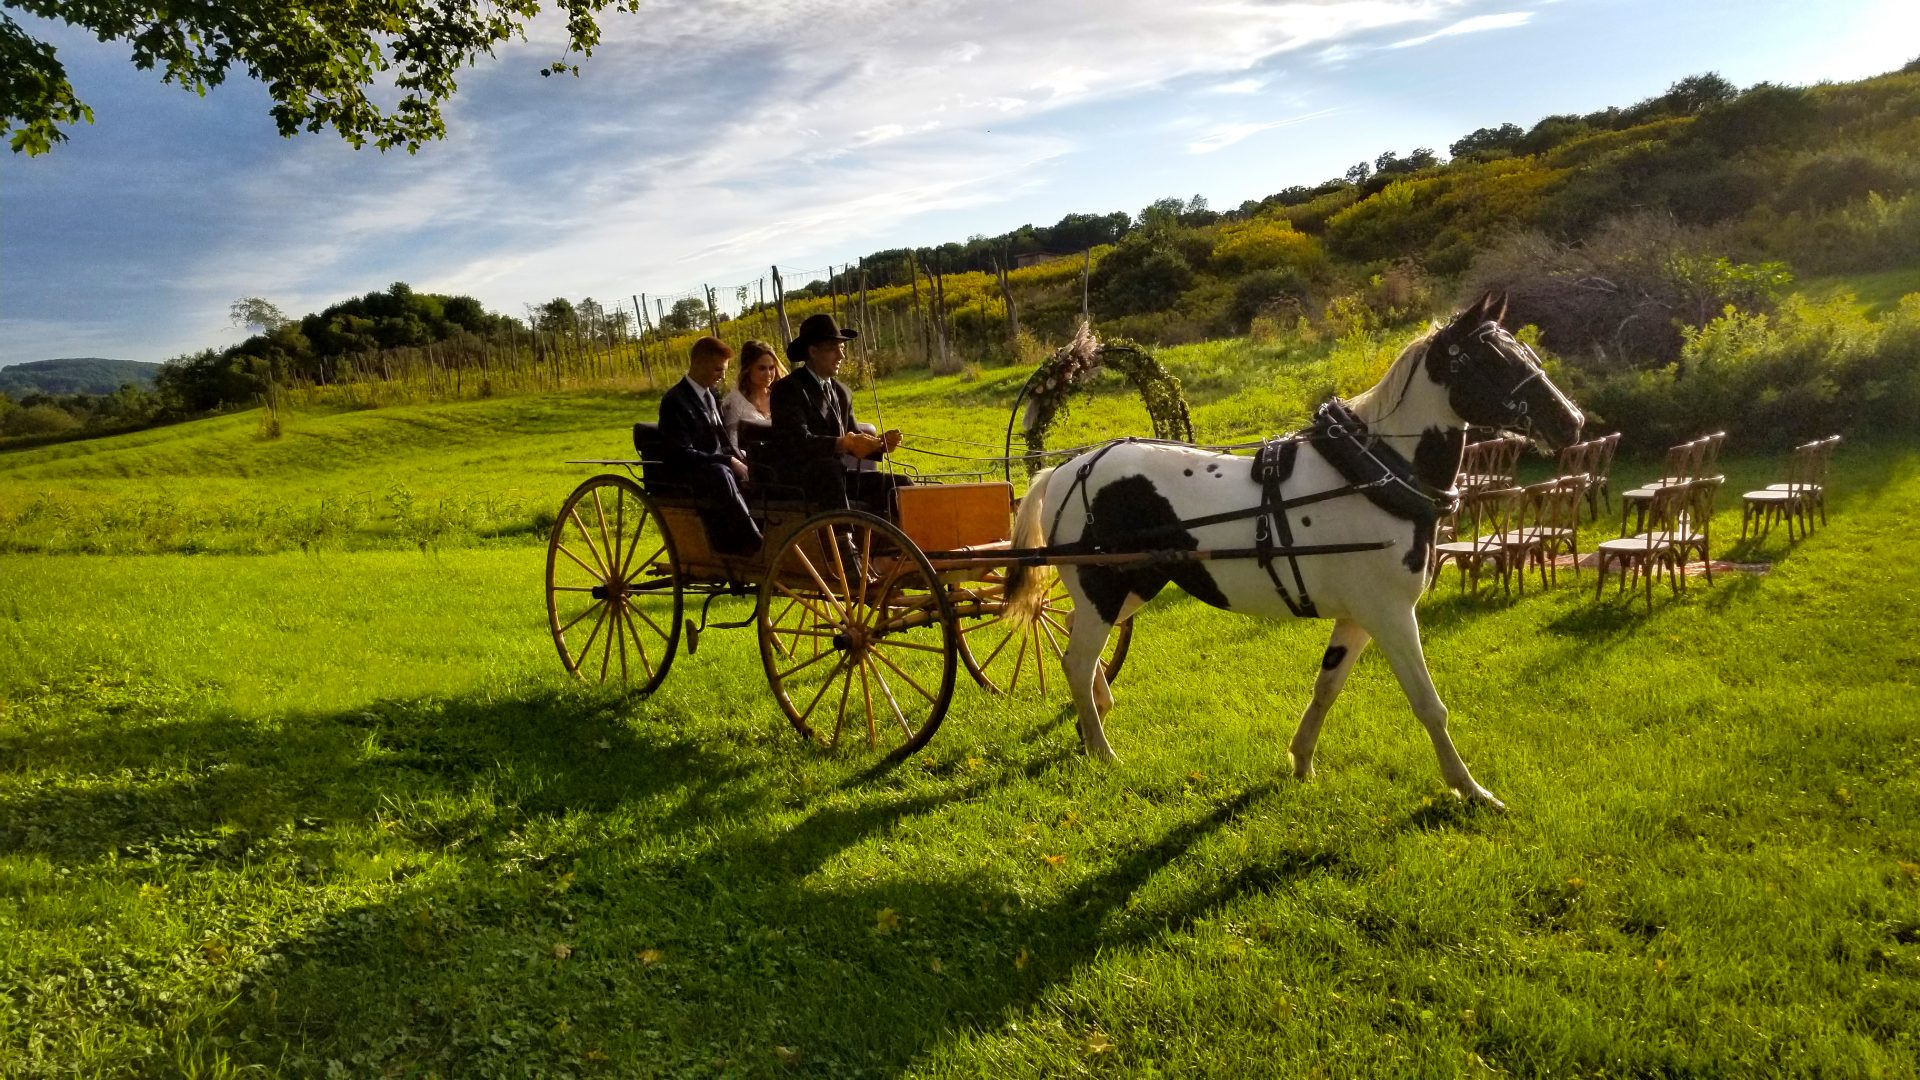 Bride and Groom, Horse and Carriage Moving